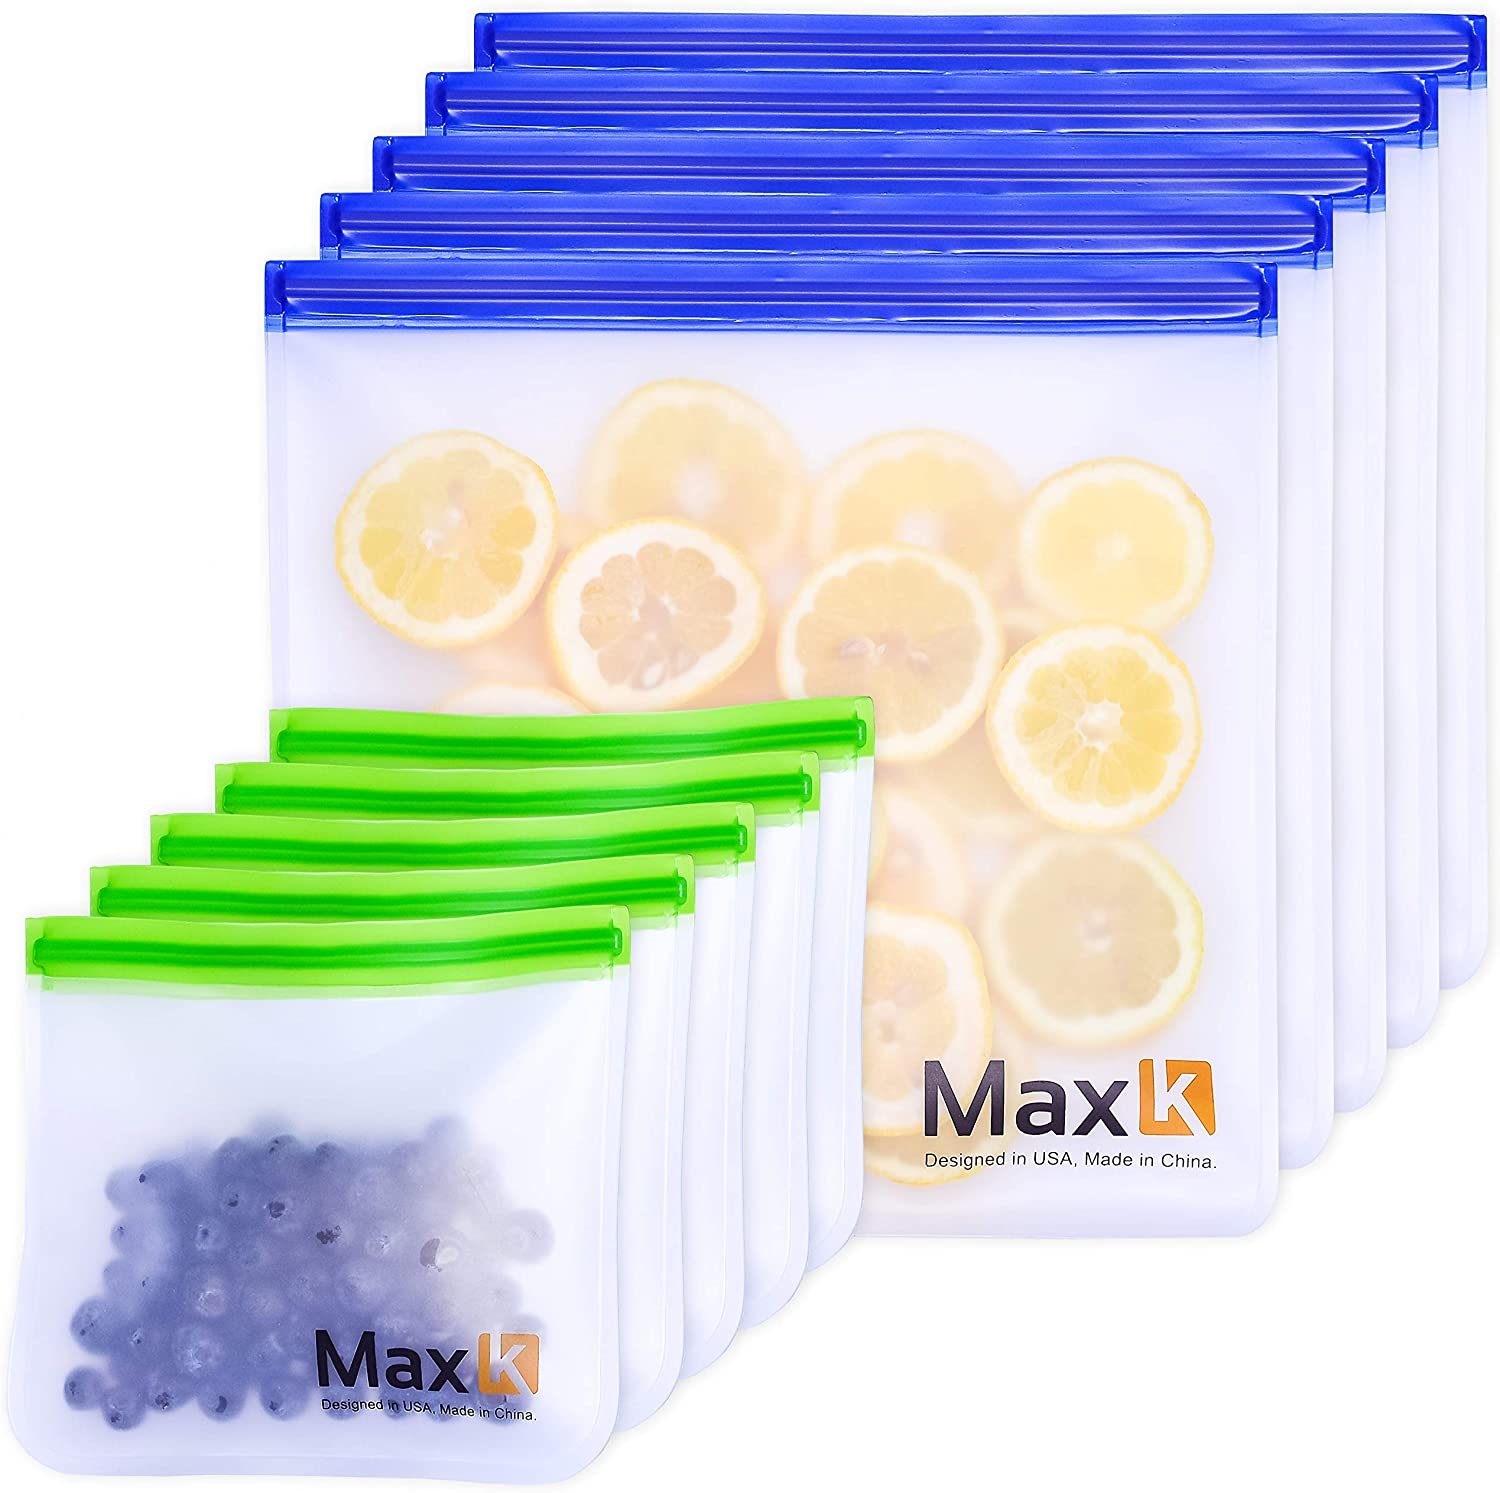 Max K Reusable Sandwich and Gallon Freezer Bags - Travel Food Containers for Fruits, Bread and Veggies - Transparent, Leak-Proof - Resealable PEVA Lunch Bag - Portable, Airtight Pouch - Pack of 10